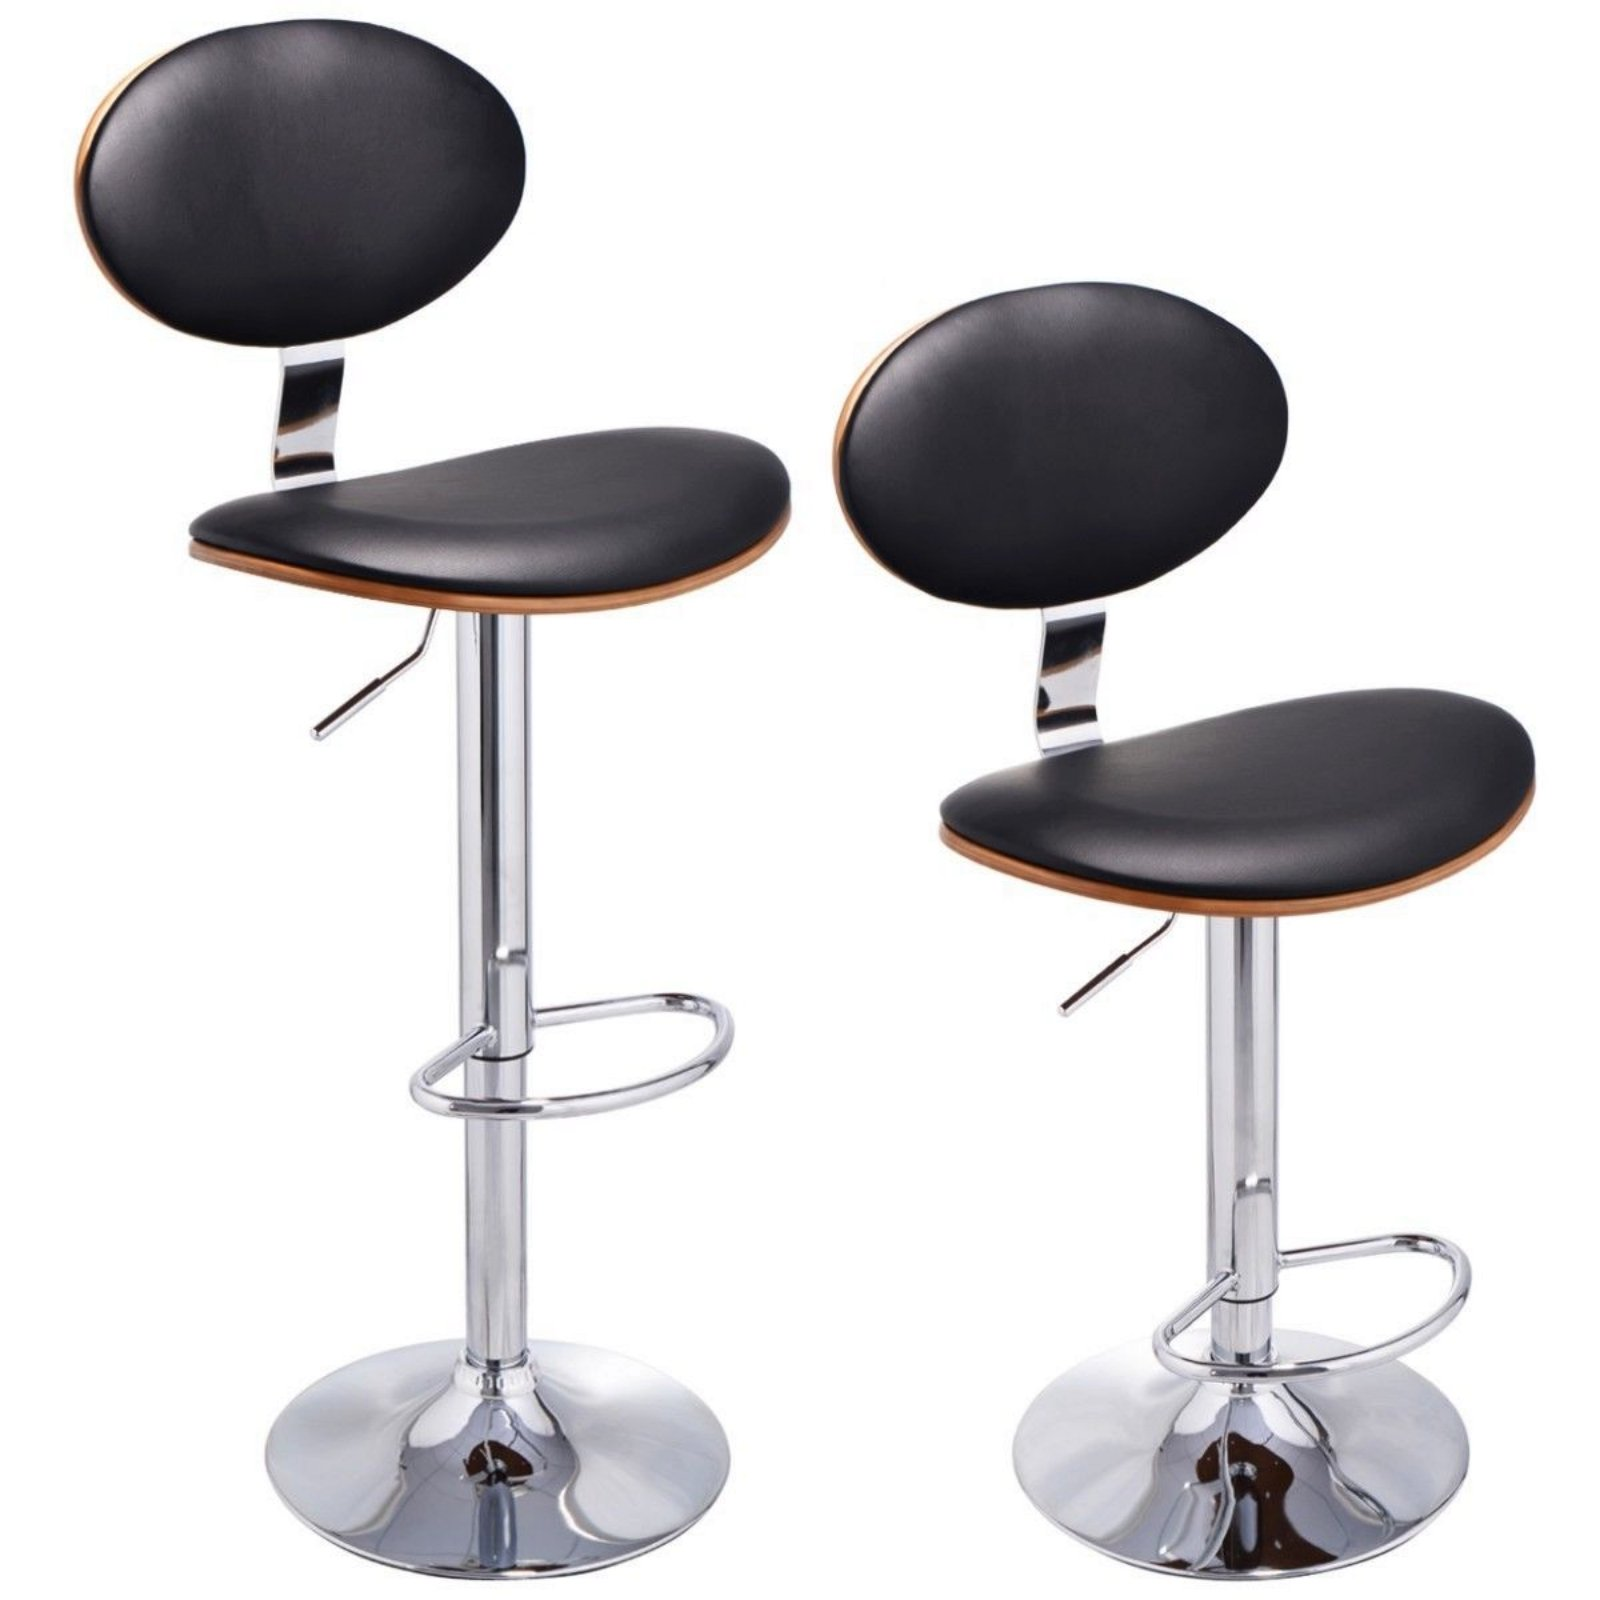 Set of 2 Bentwood Bar Stools Ageing resisting PU Leather Swivel Modern Barstools Adjustable Height New #725